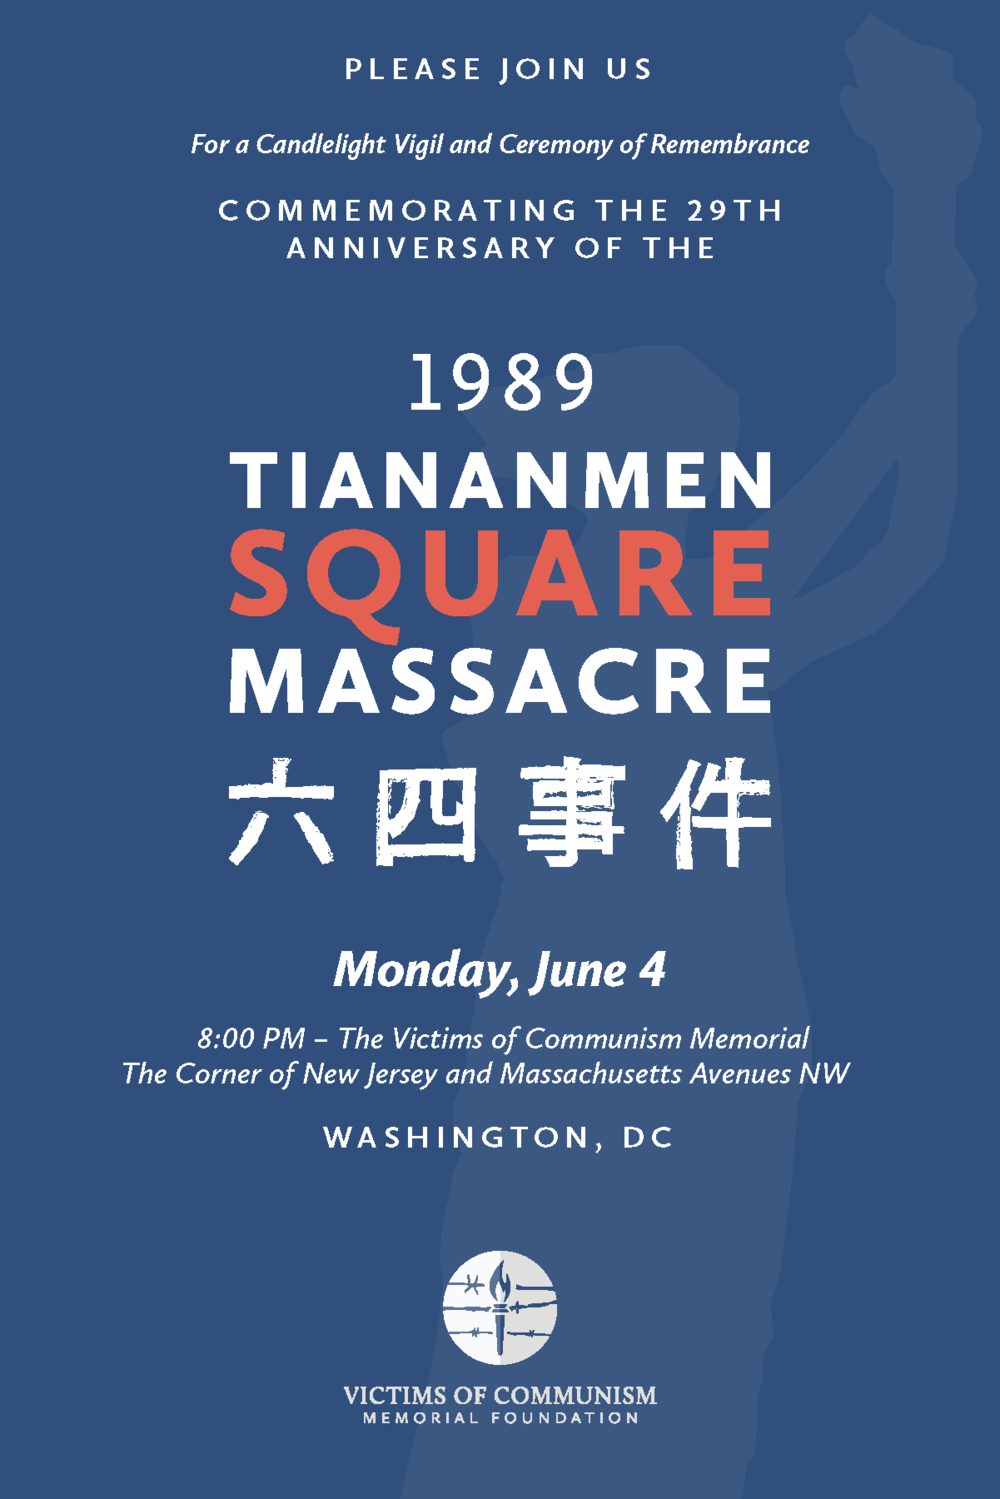 Please join us for a candlelight vigil and ceremony of remembrance commemorating the 29  th   anniversary of the 1989 Tiananmen Square Massacre.